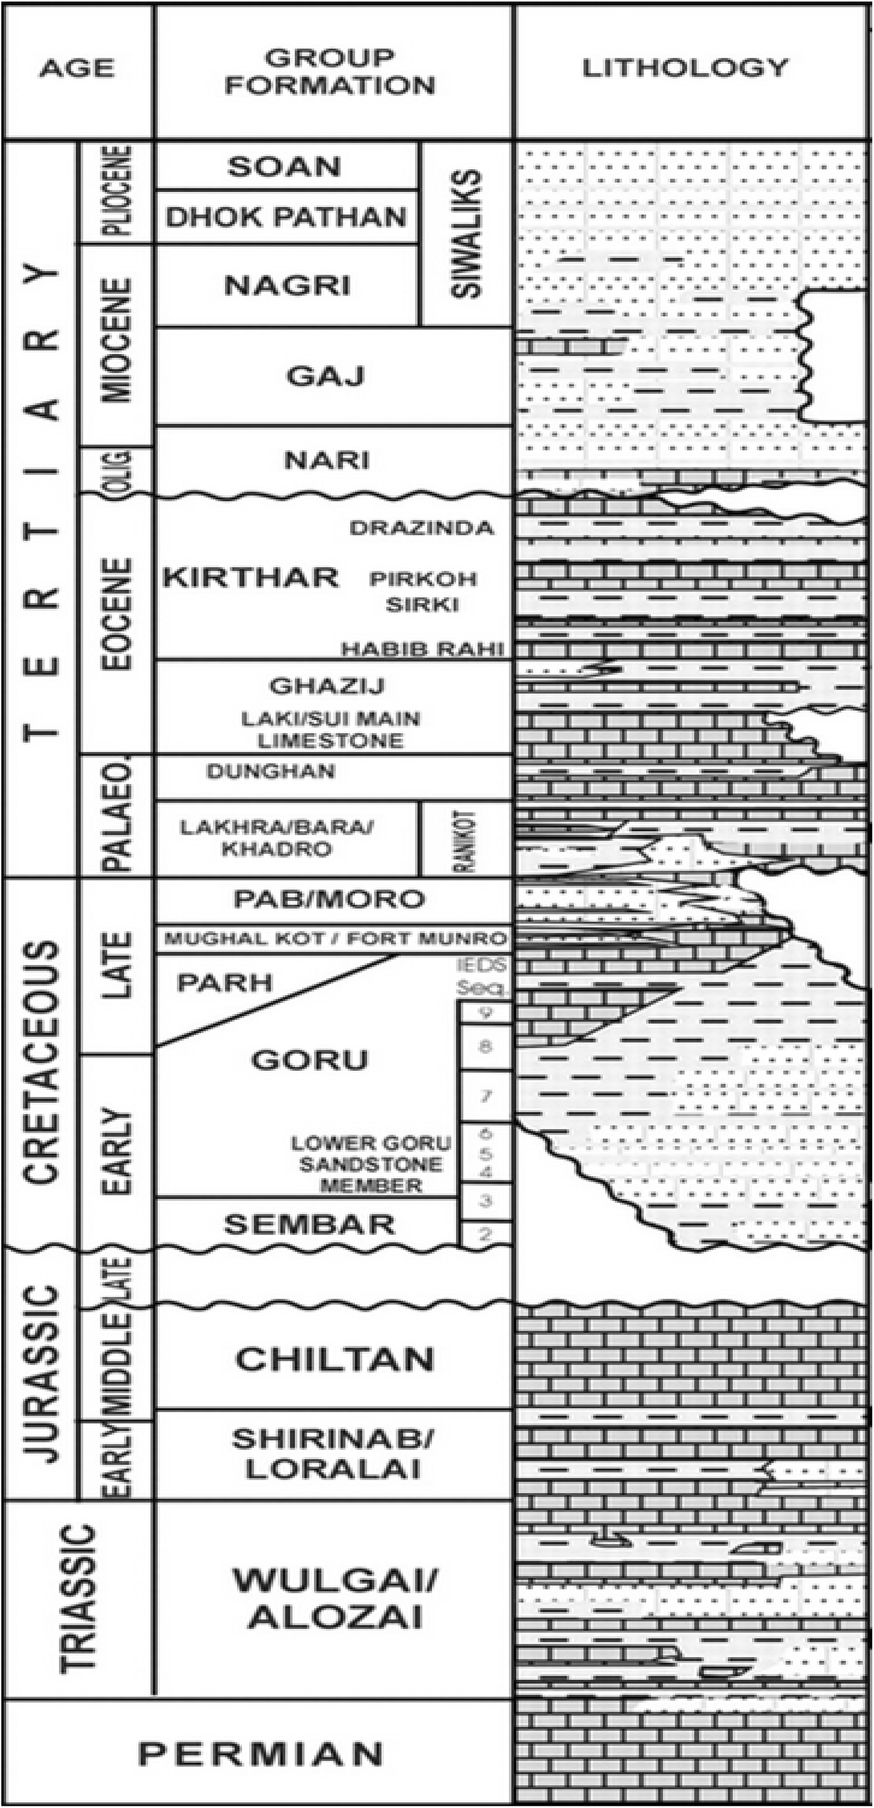 Application of well log analysis to estimate the petrophysical